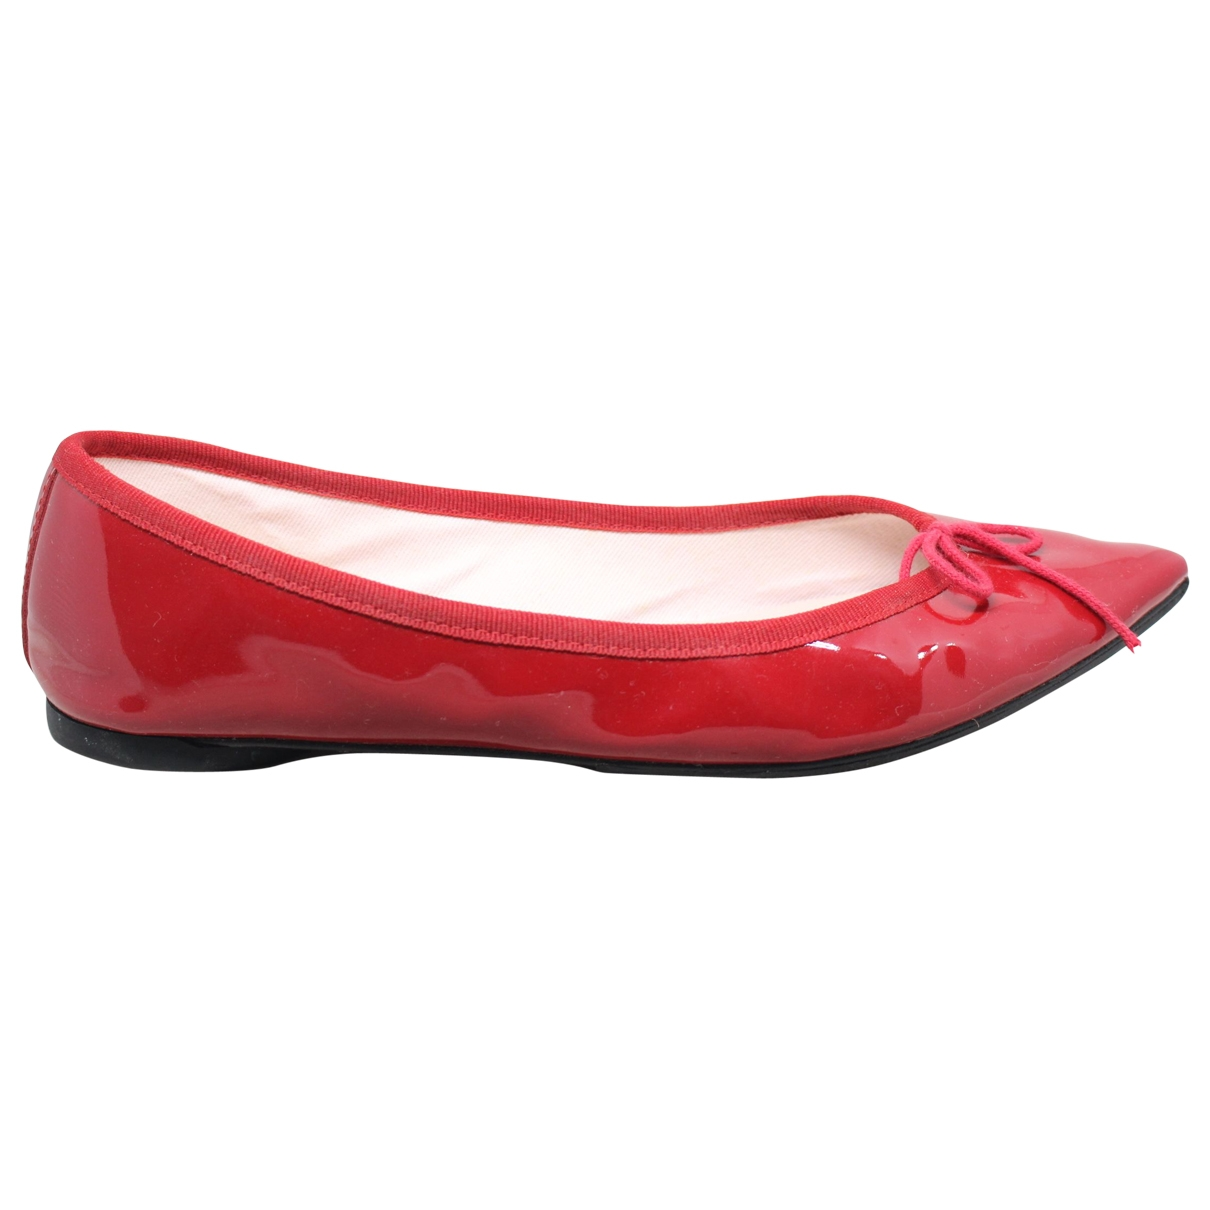 Repetto \N Mokassins in  Rot Lackleder